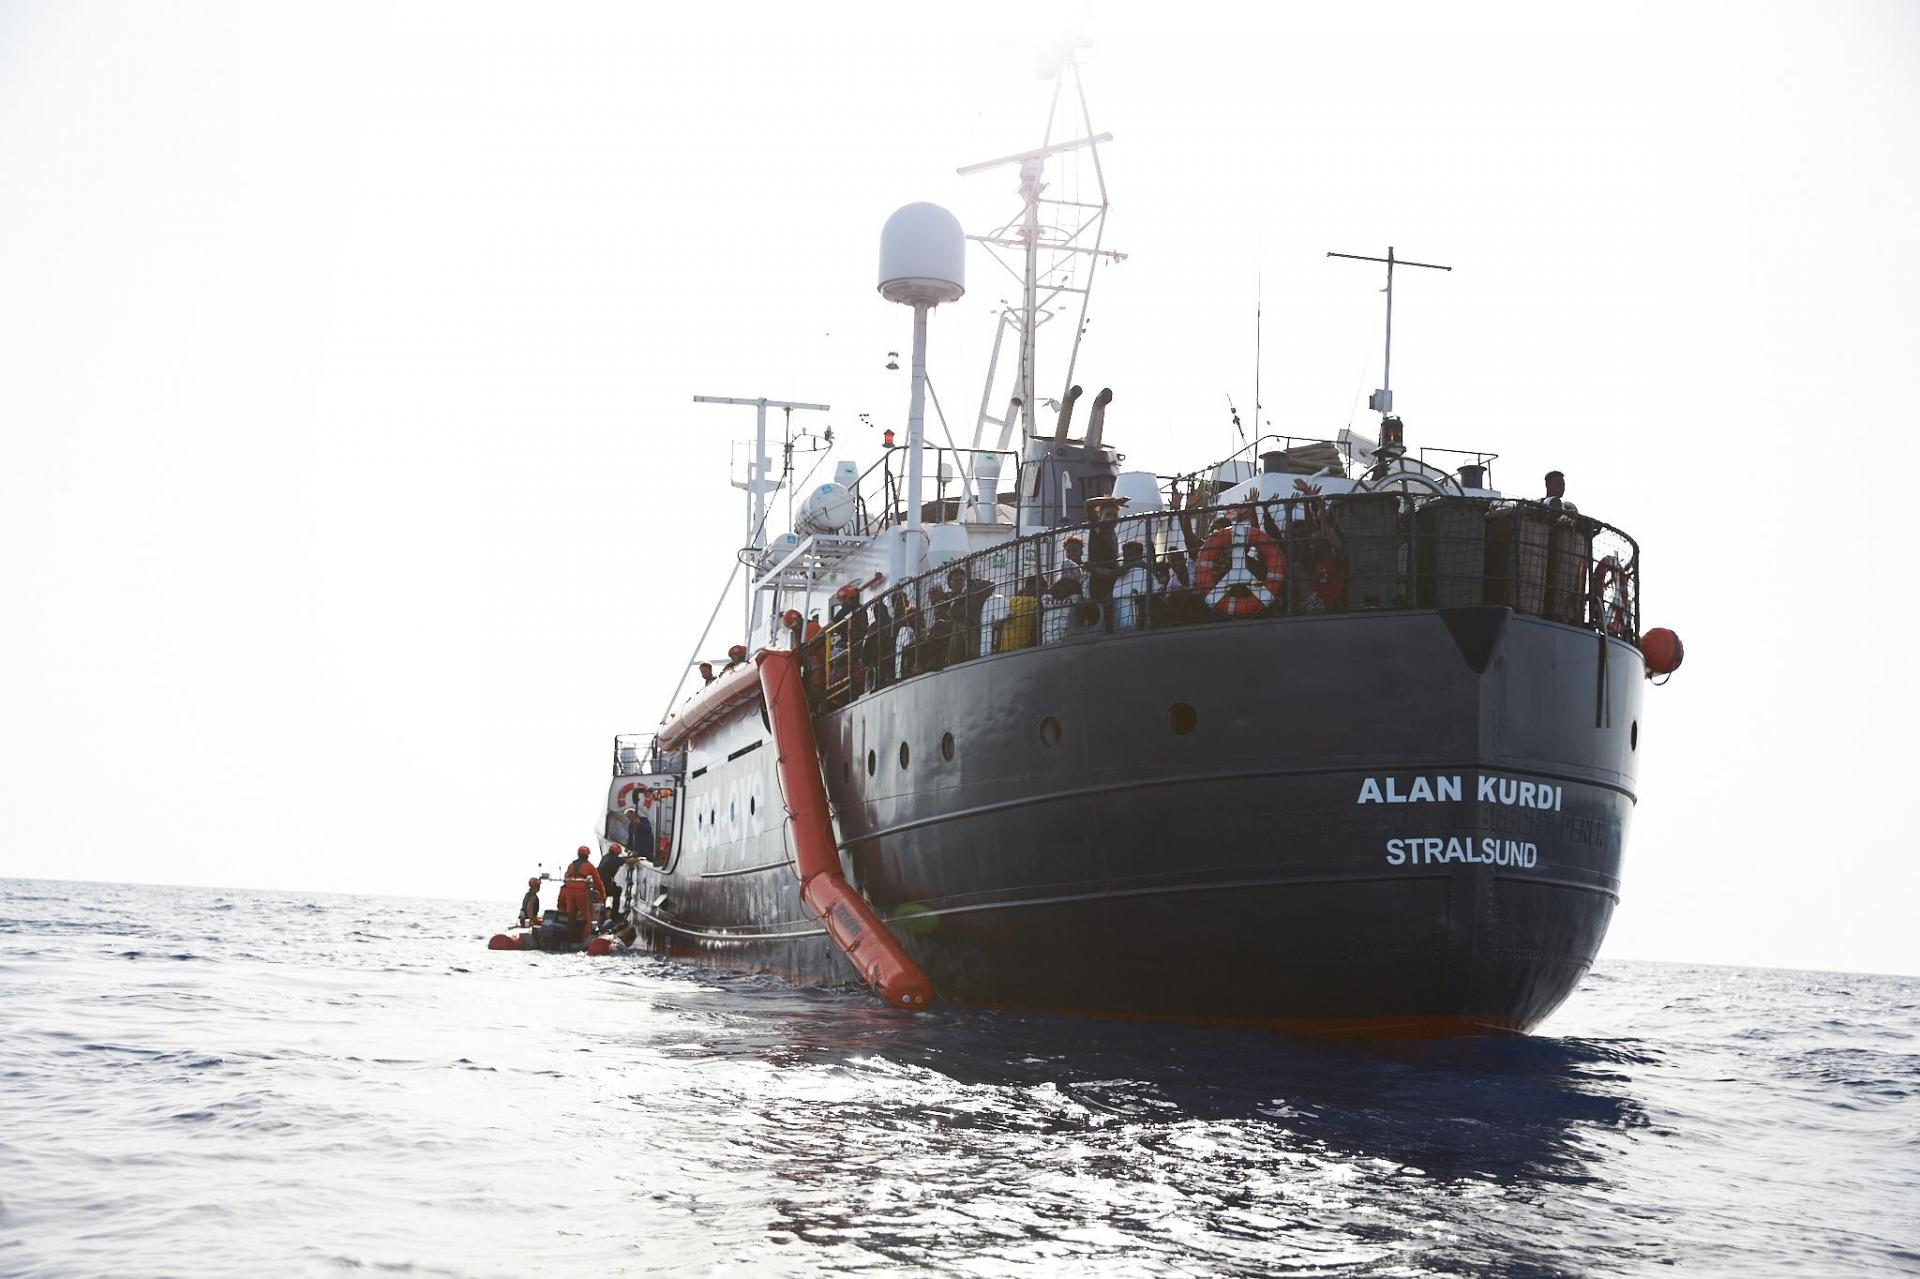 The migrants have been stranded on board the Alan Kurdi for more than a week.